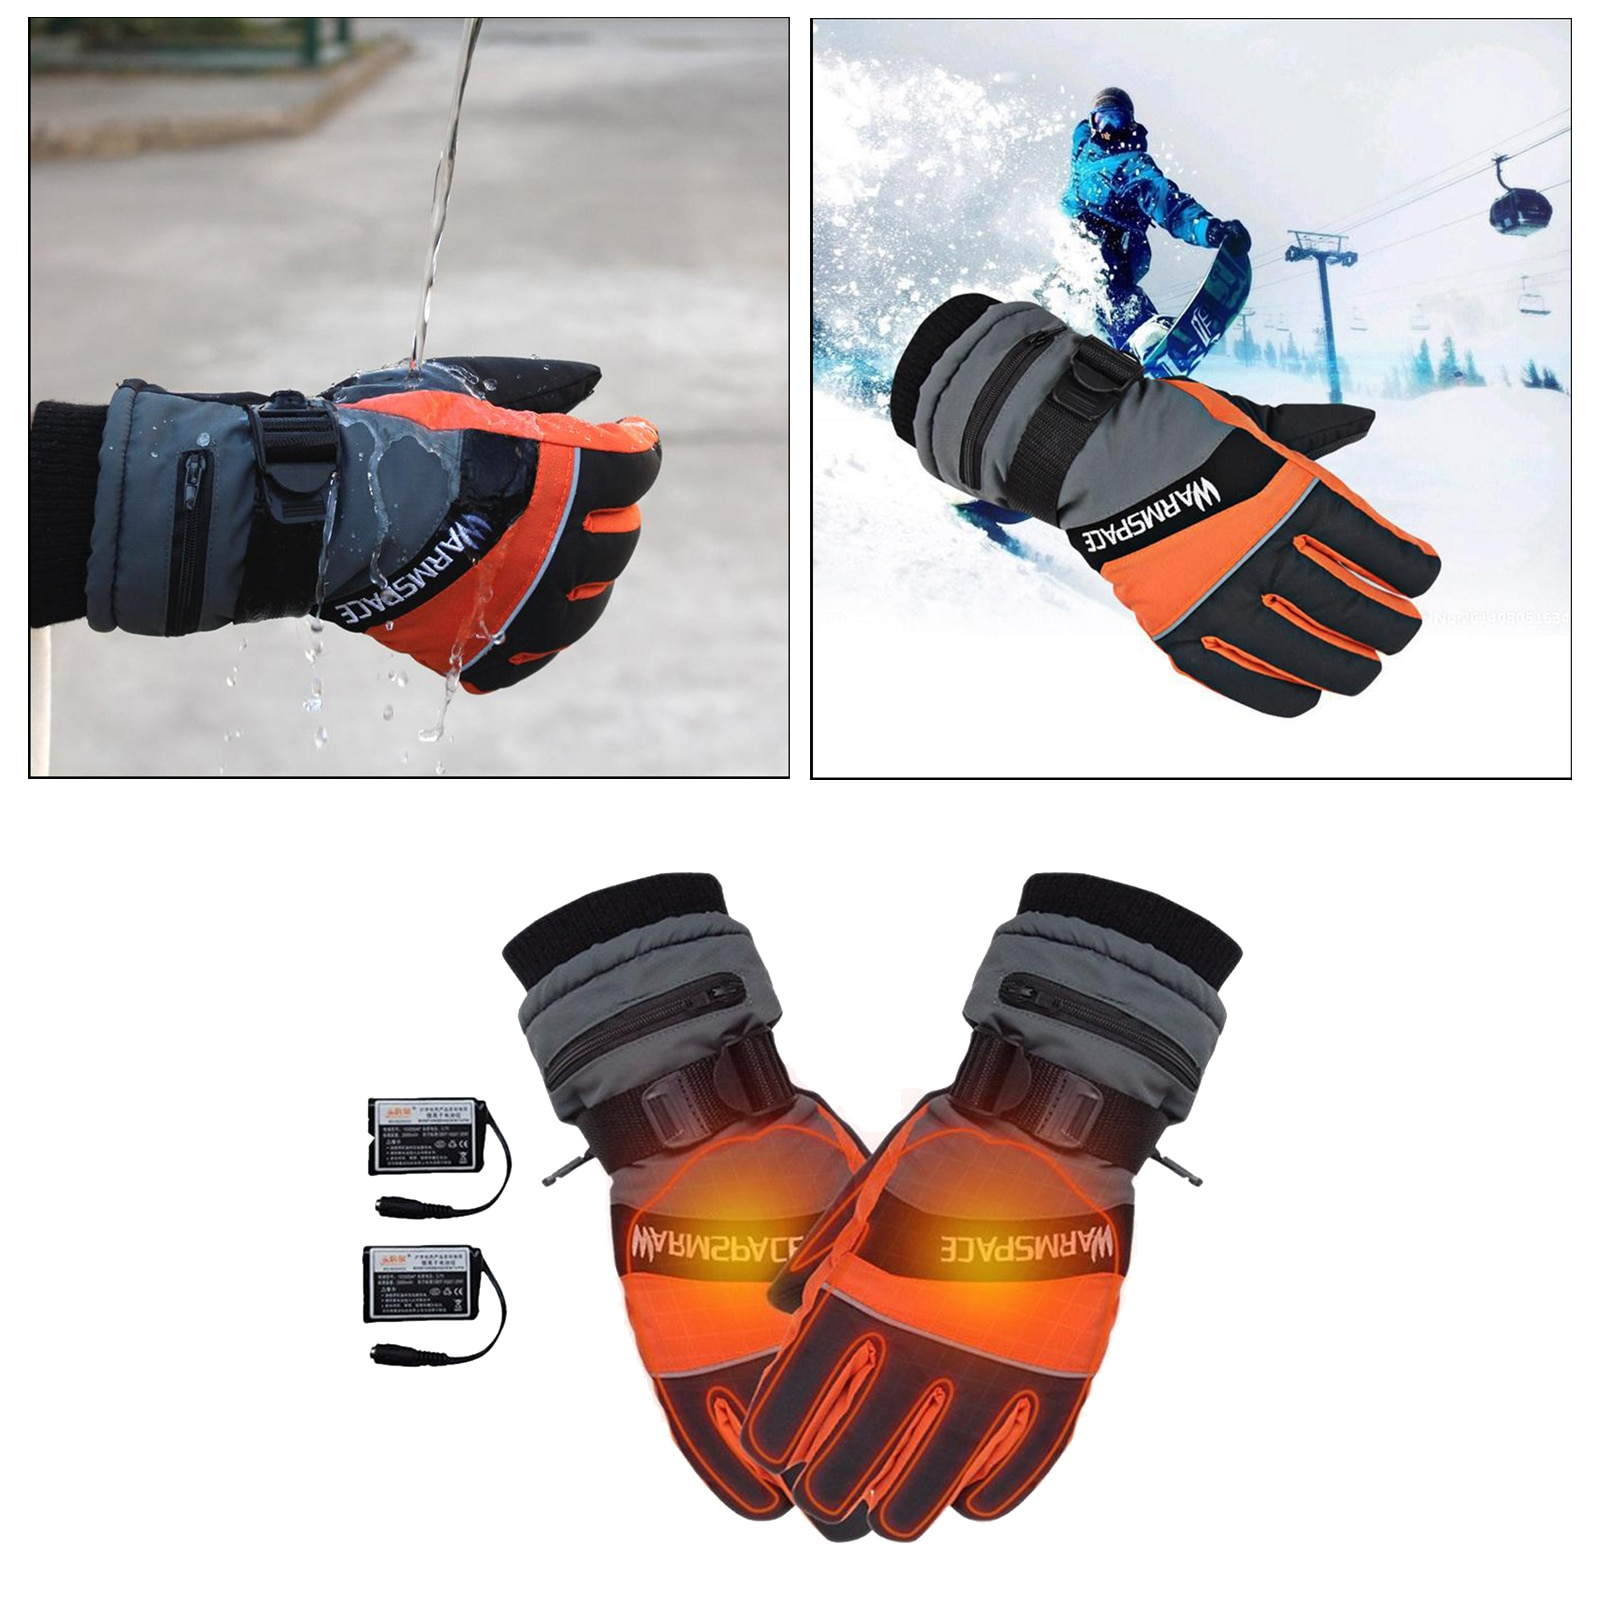 Heated Gloves, Battery Electric Motorcycle Gloves Mittens, Heating Skiing Gloves Snowboarding Breathable Gloves for Men Women enlarge